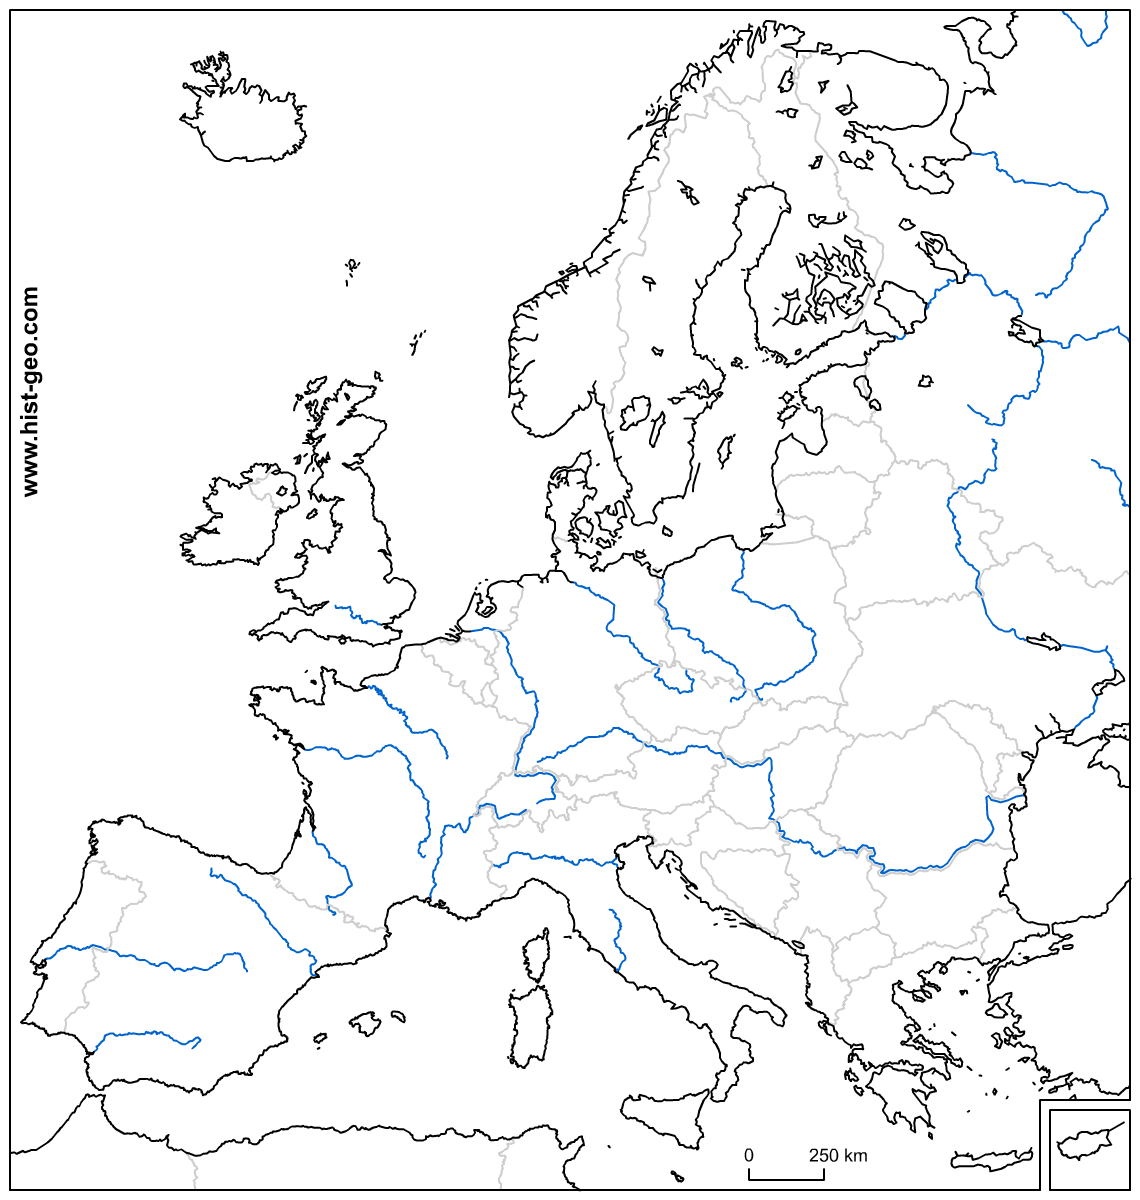 Free Blank Outline Map Of Europe With Its Countries And